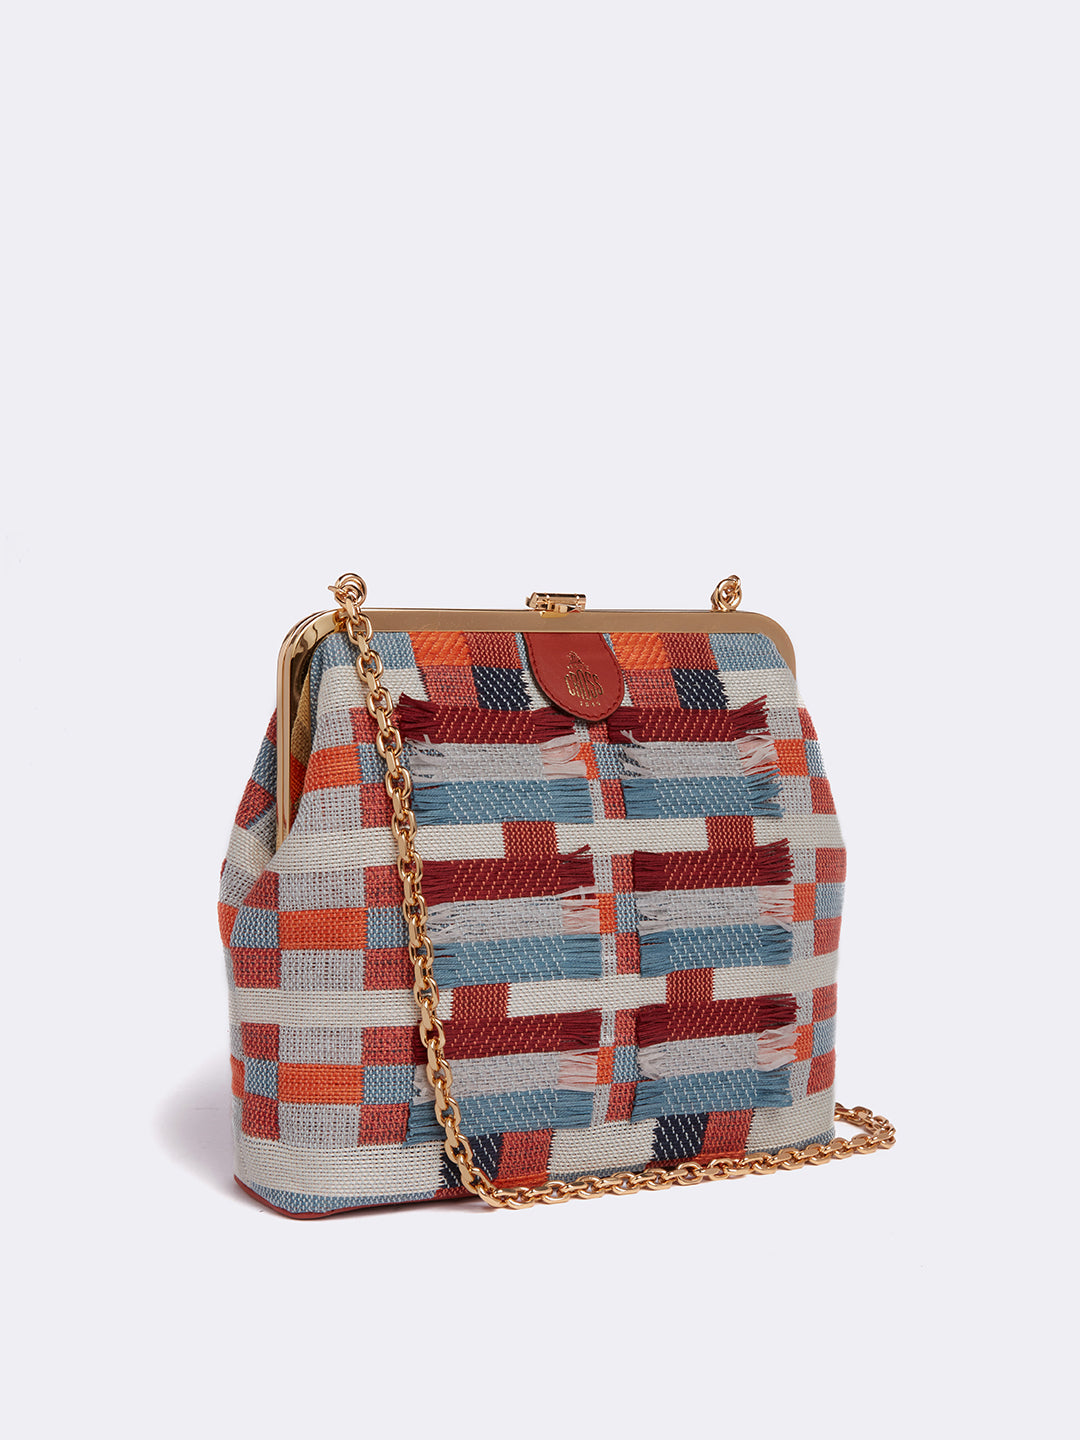 Susanna Handwoven & Leather Frame Pouch Bag